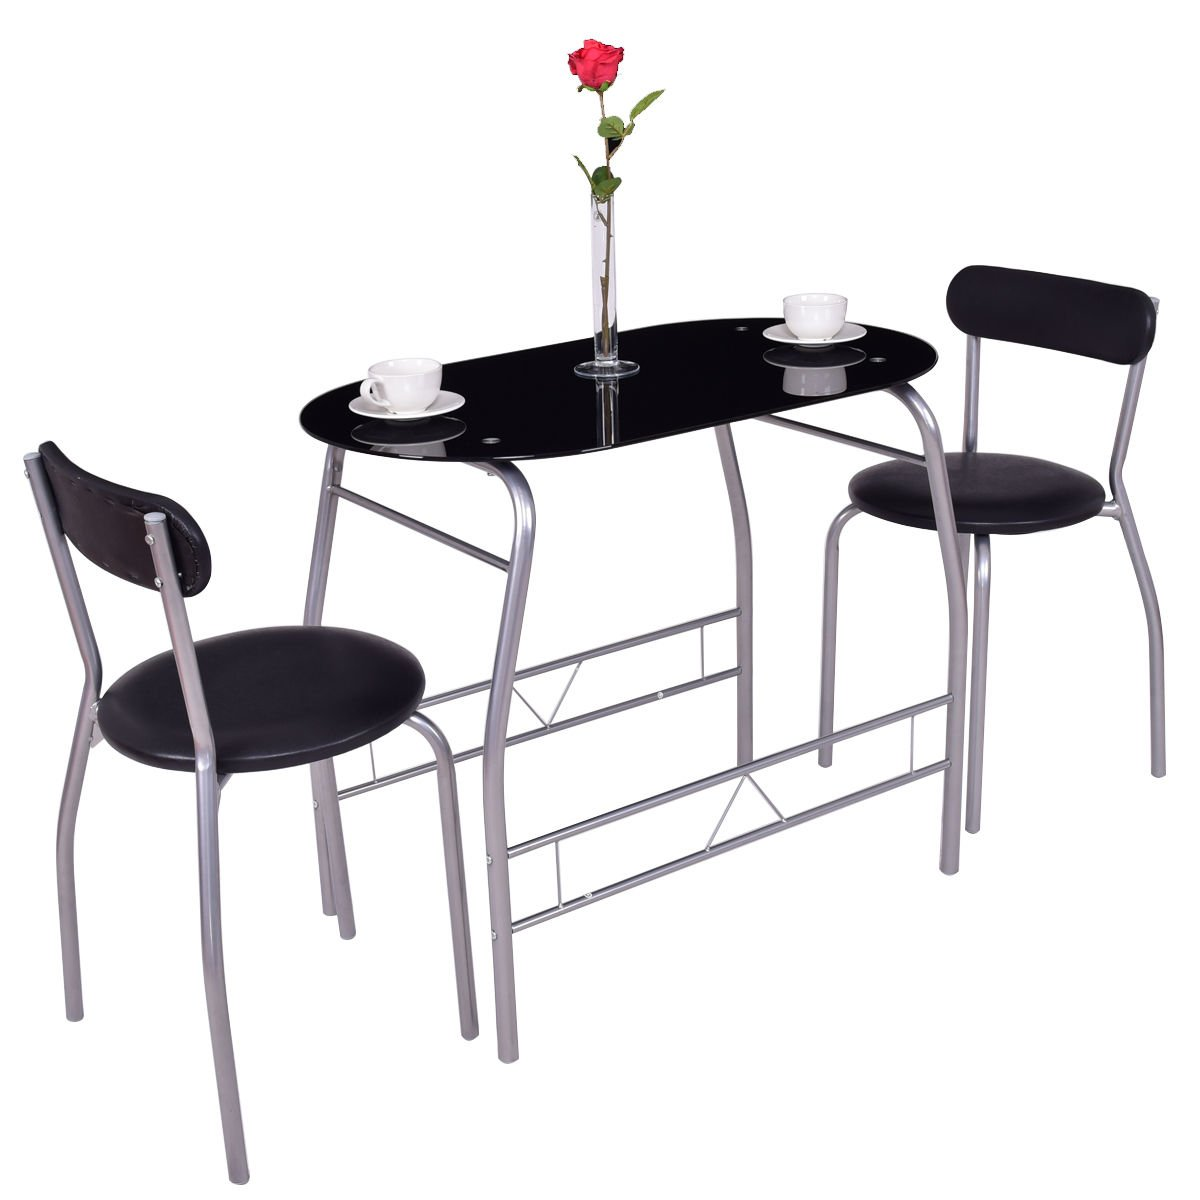 Sittikatechai Dining Set 3Pcs Tempered Glass Top Table 2 Chairs Bistro Kitchen Furniture